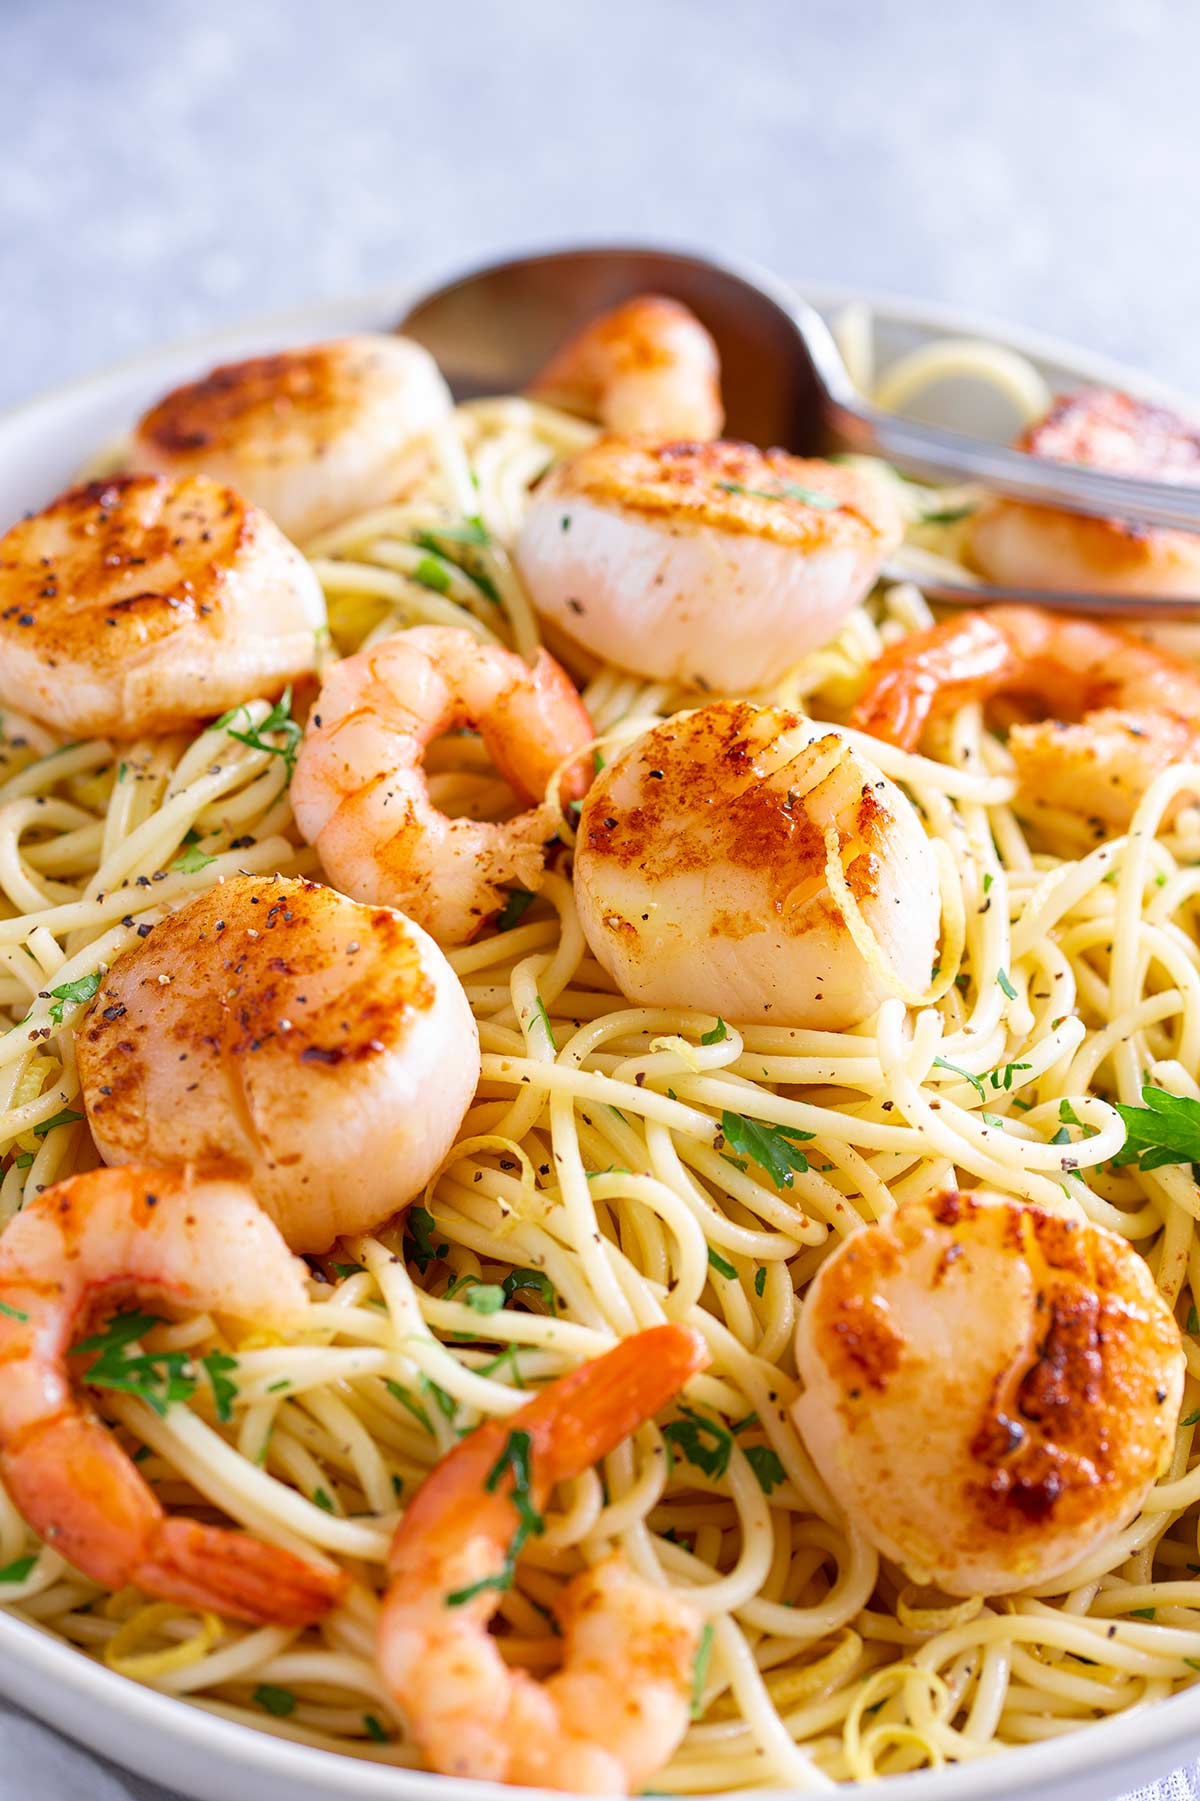 scallops and prawns on a bed of pasta